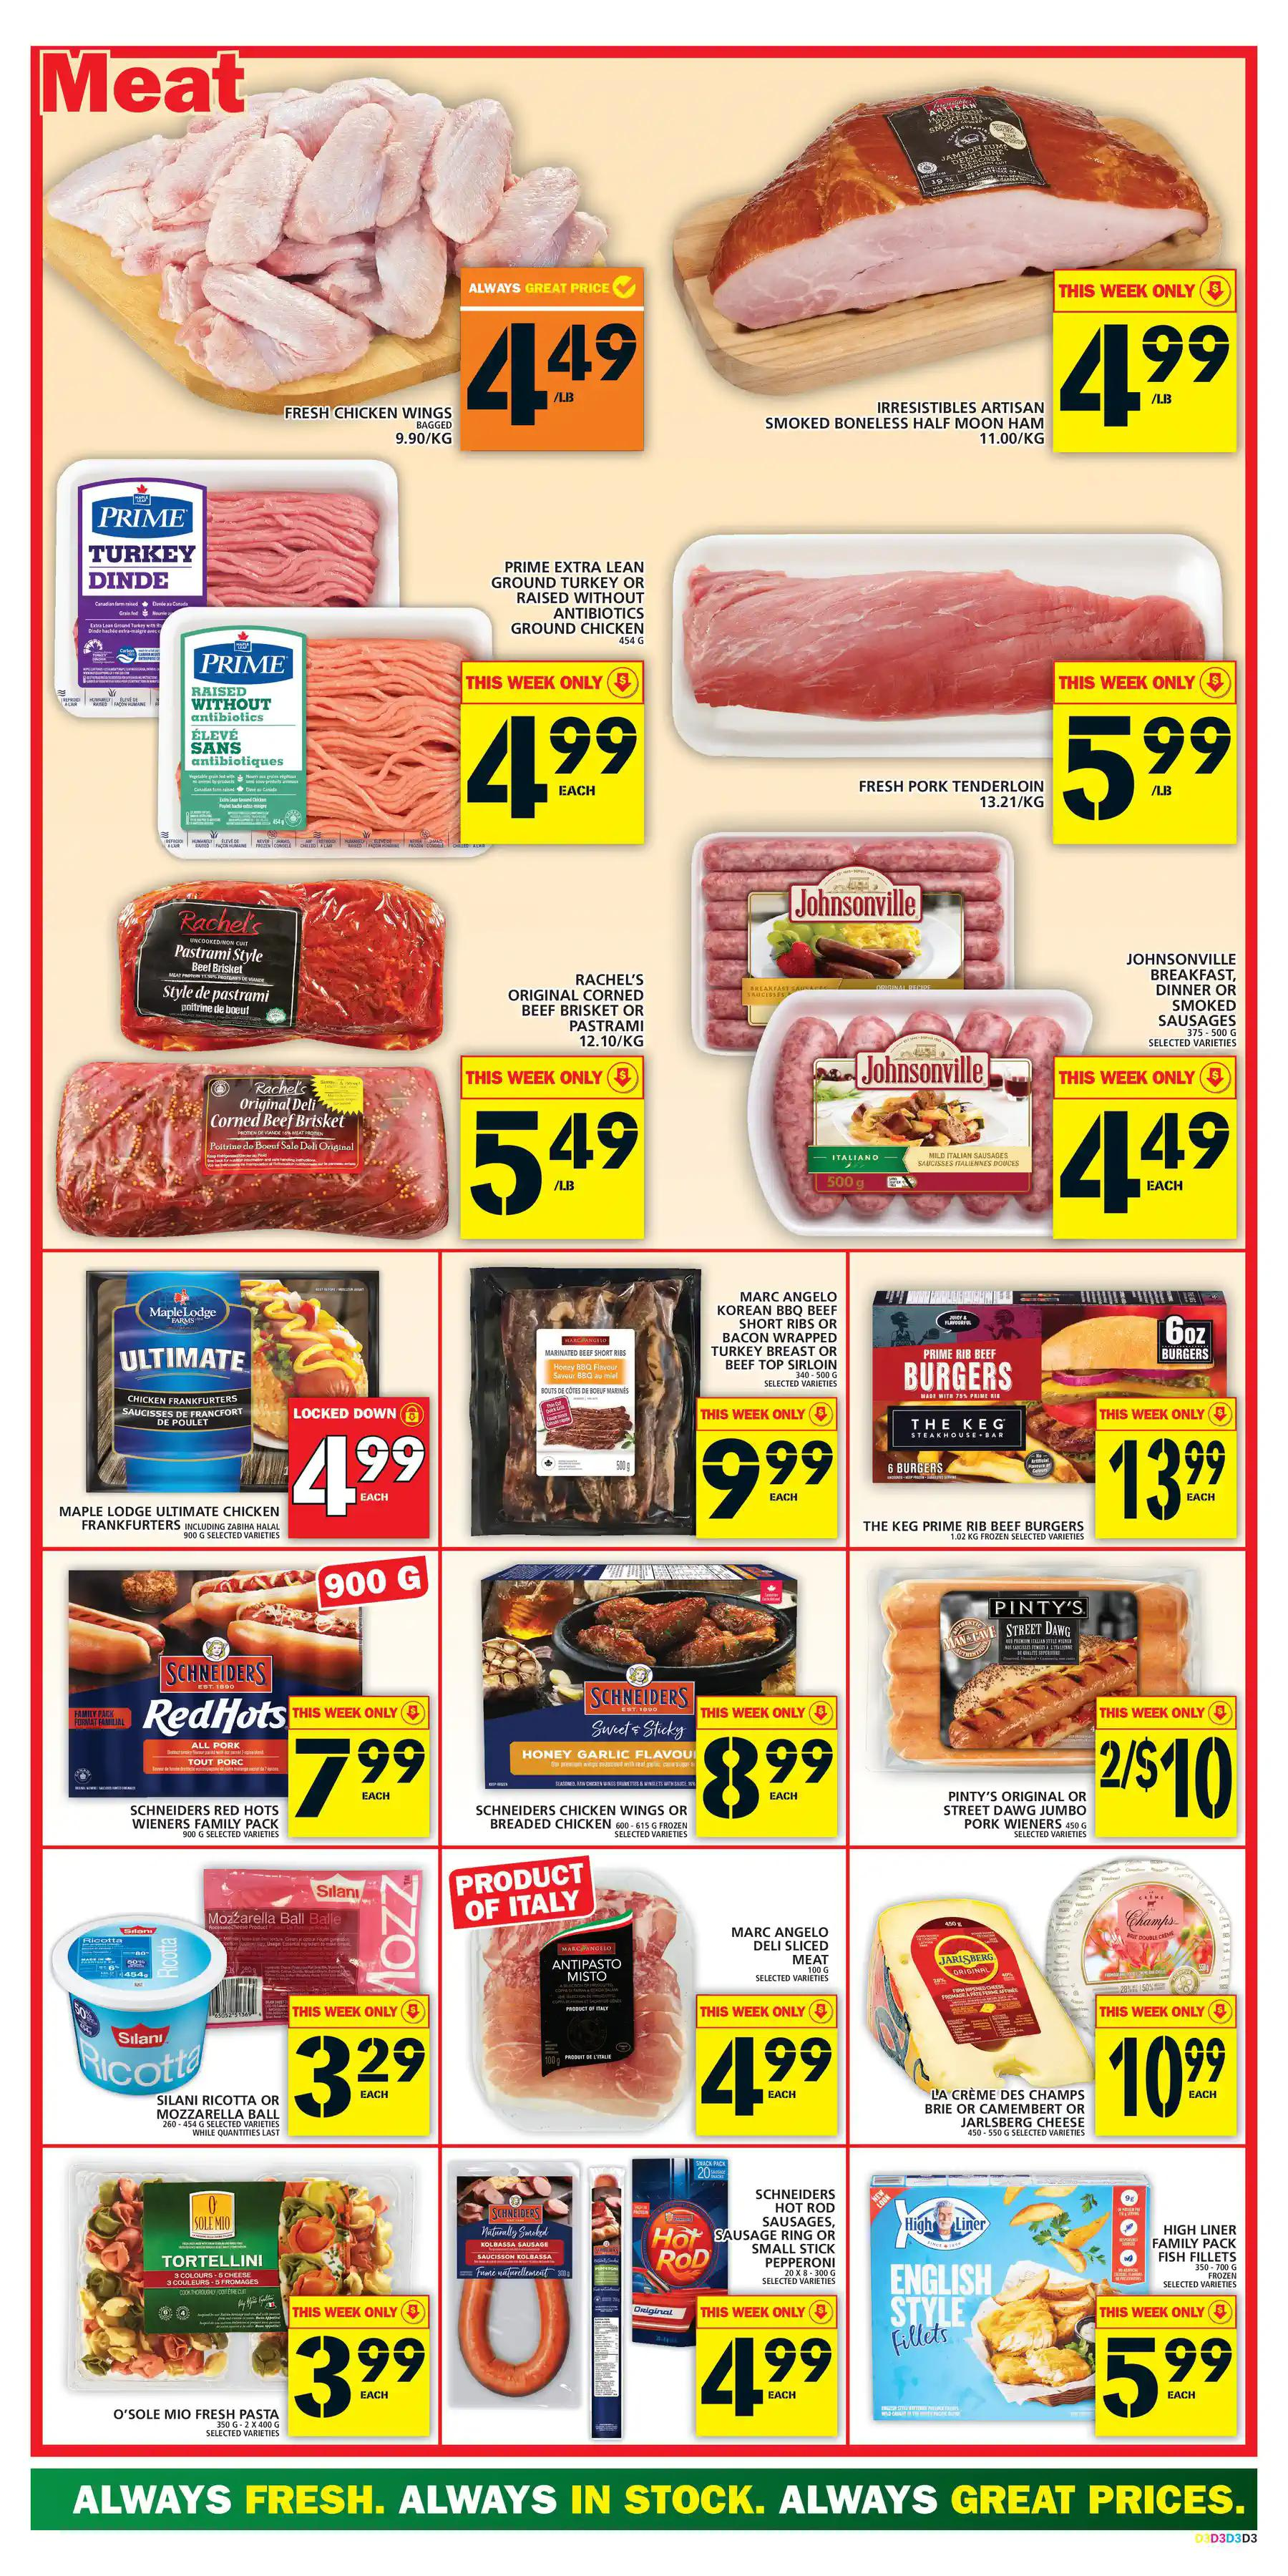 Food Basics - Weekly Flyer Specials - Page 4